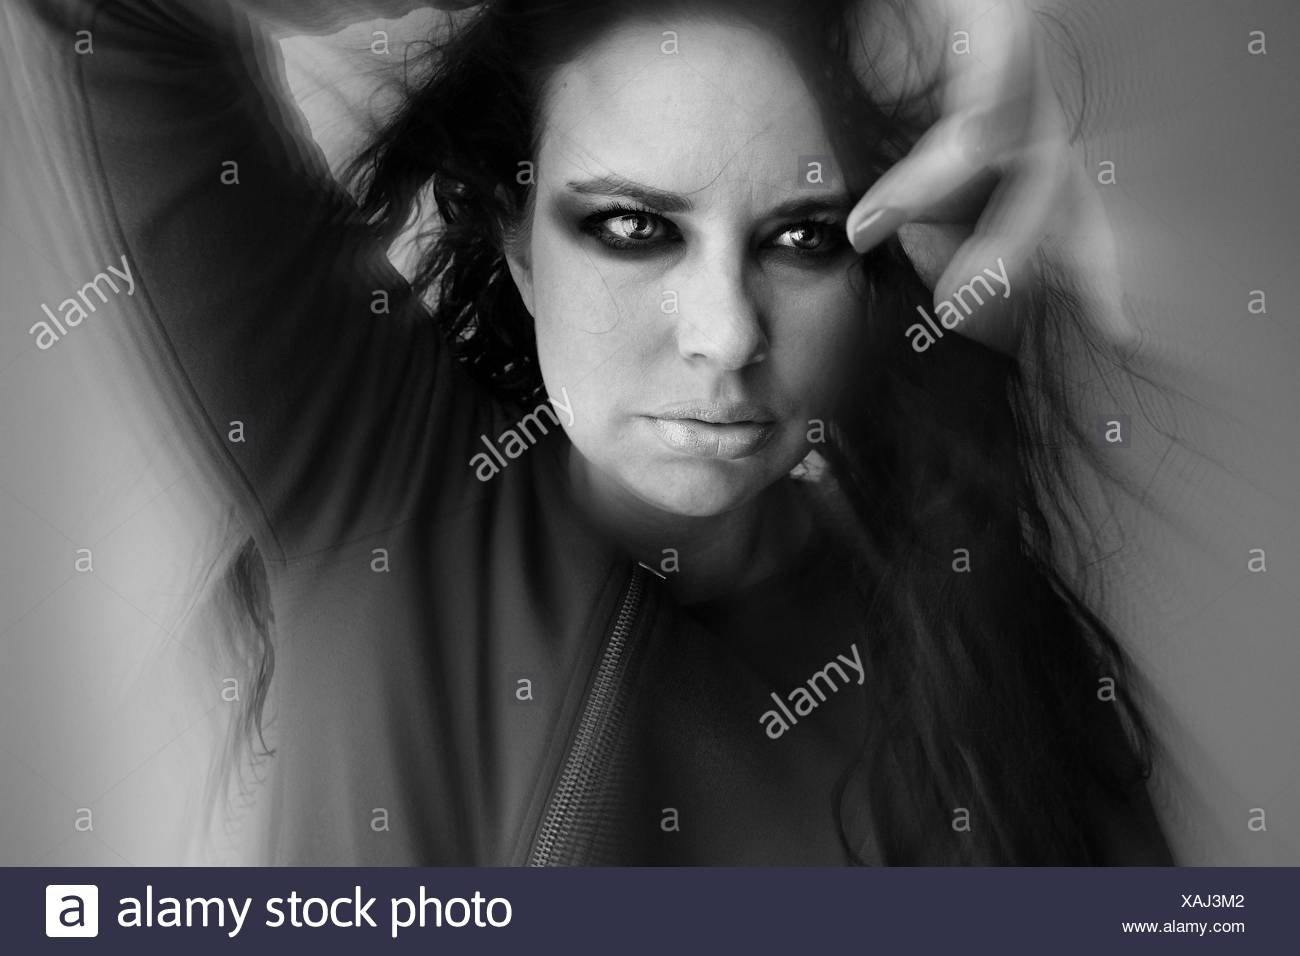 Front View Of Fashion Model Against Gray Background - Stock Image